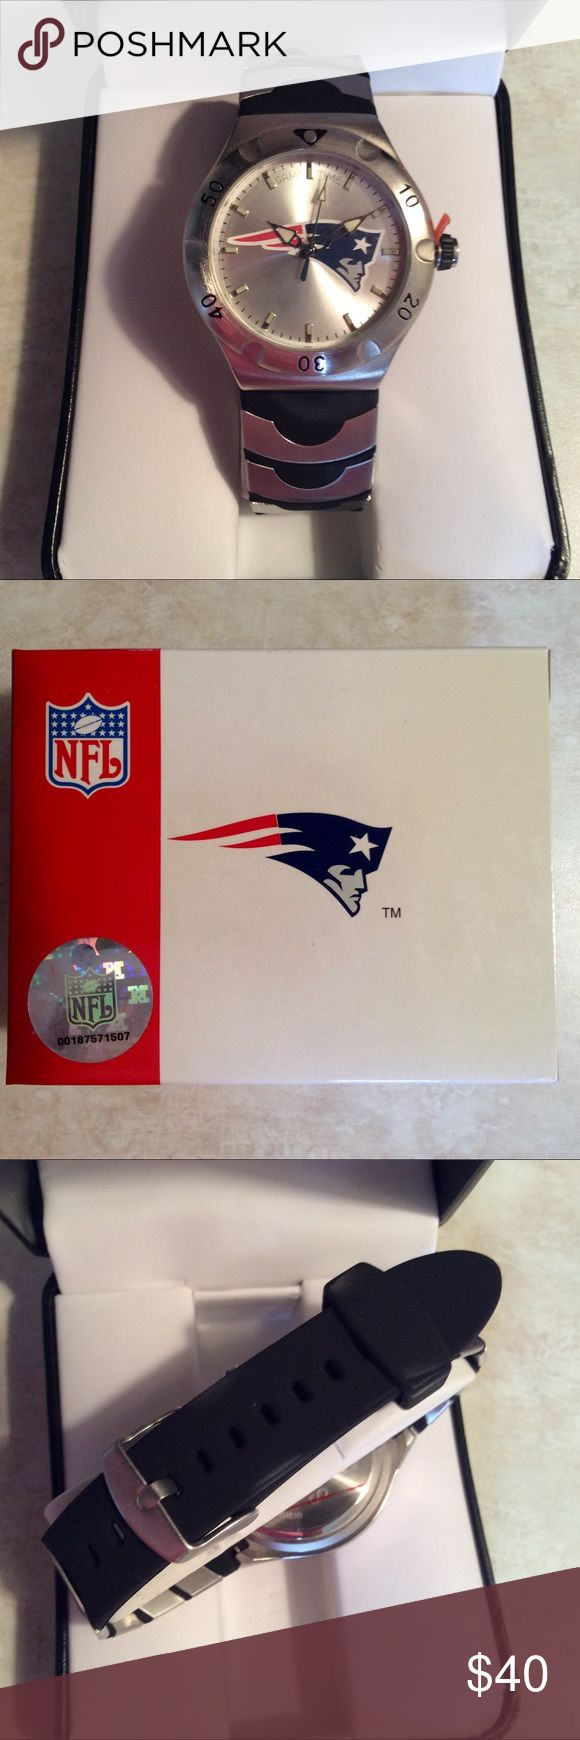 New England Patriots wrist watch NFL game time Nice NFL Avon watch made by game time rubber style wrist band quality made watch includes new battery, not installed NWT PRICE FIRM Game Time Accessories Watches